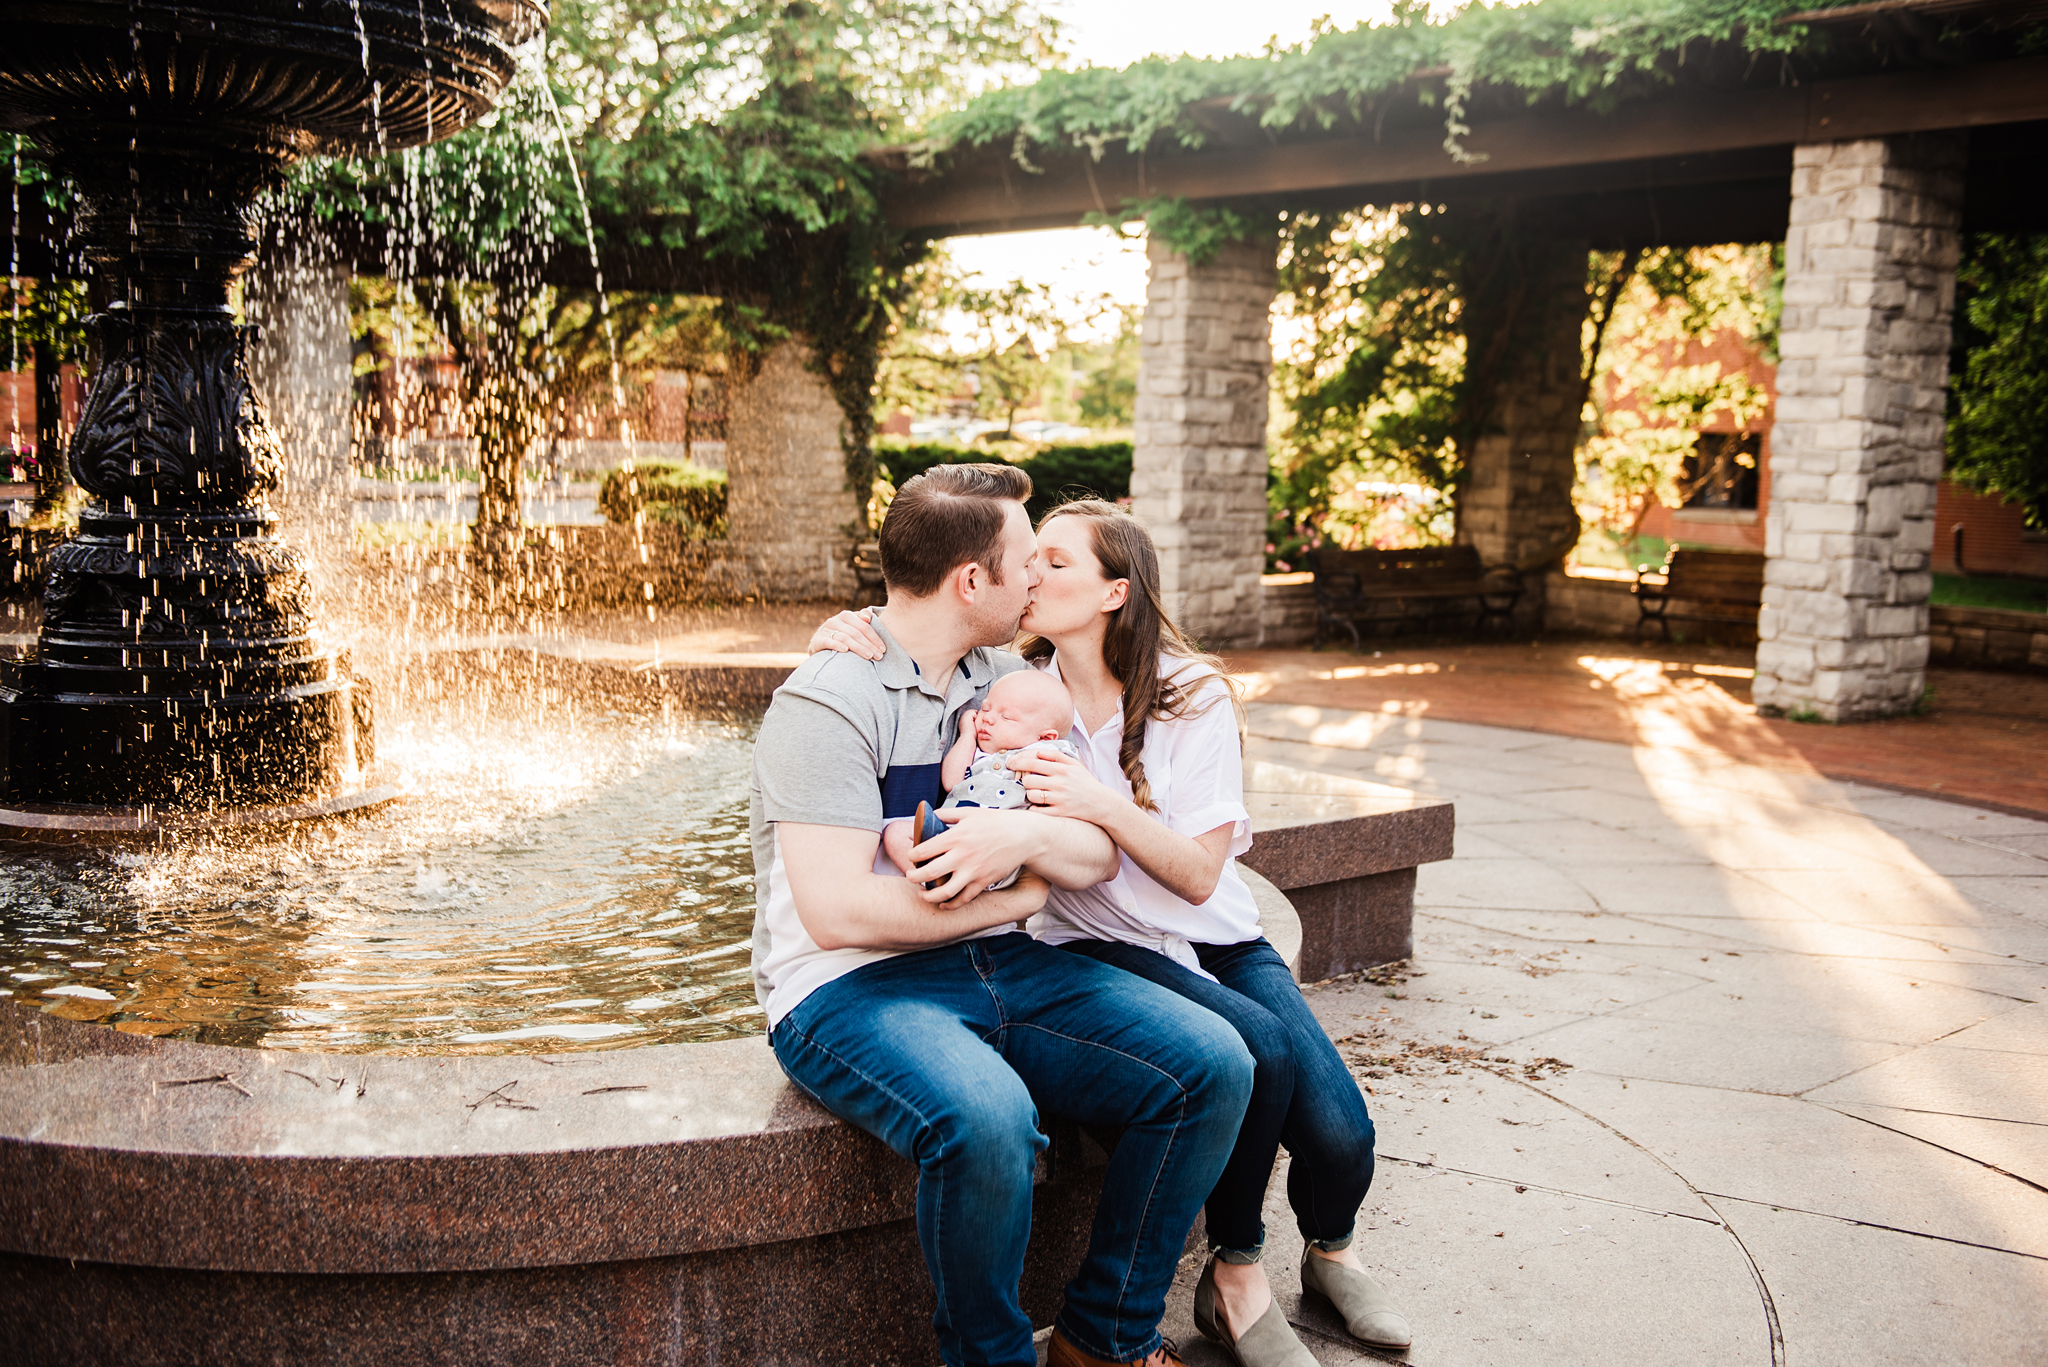 Franklin_Square_Park_Syracuse_Engagement_Session_JILL_STUDIO_Rochester_NY_Photographer_DSC_4017.jpg